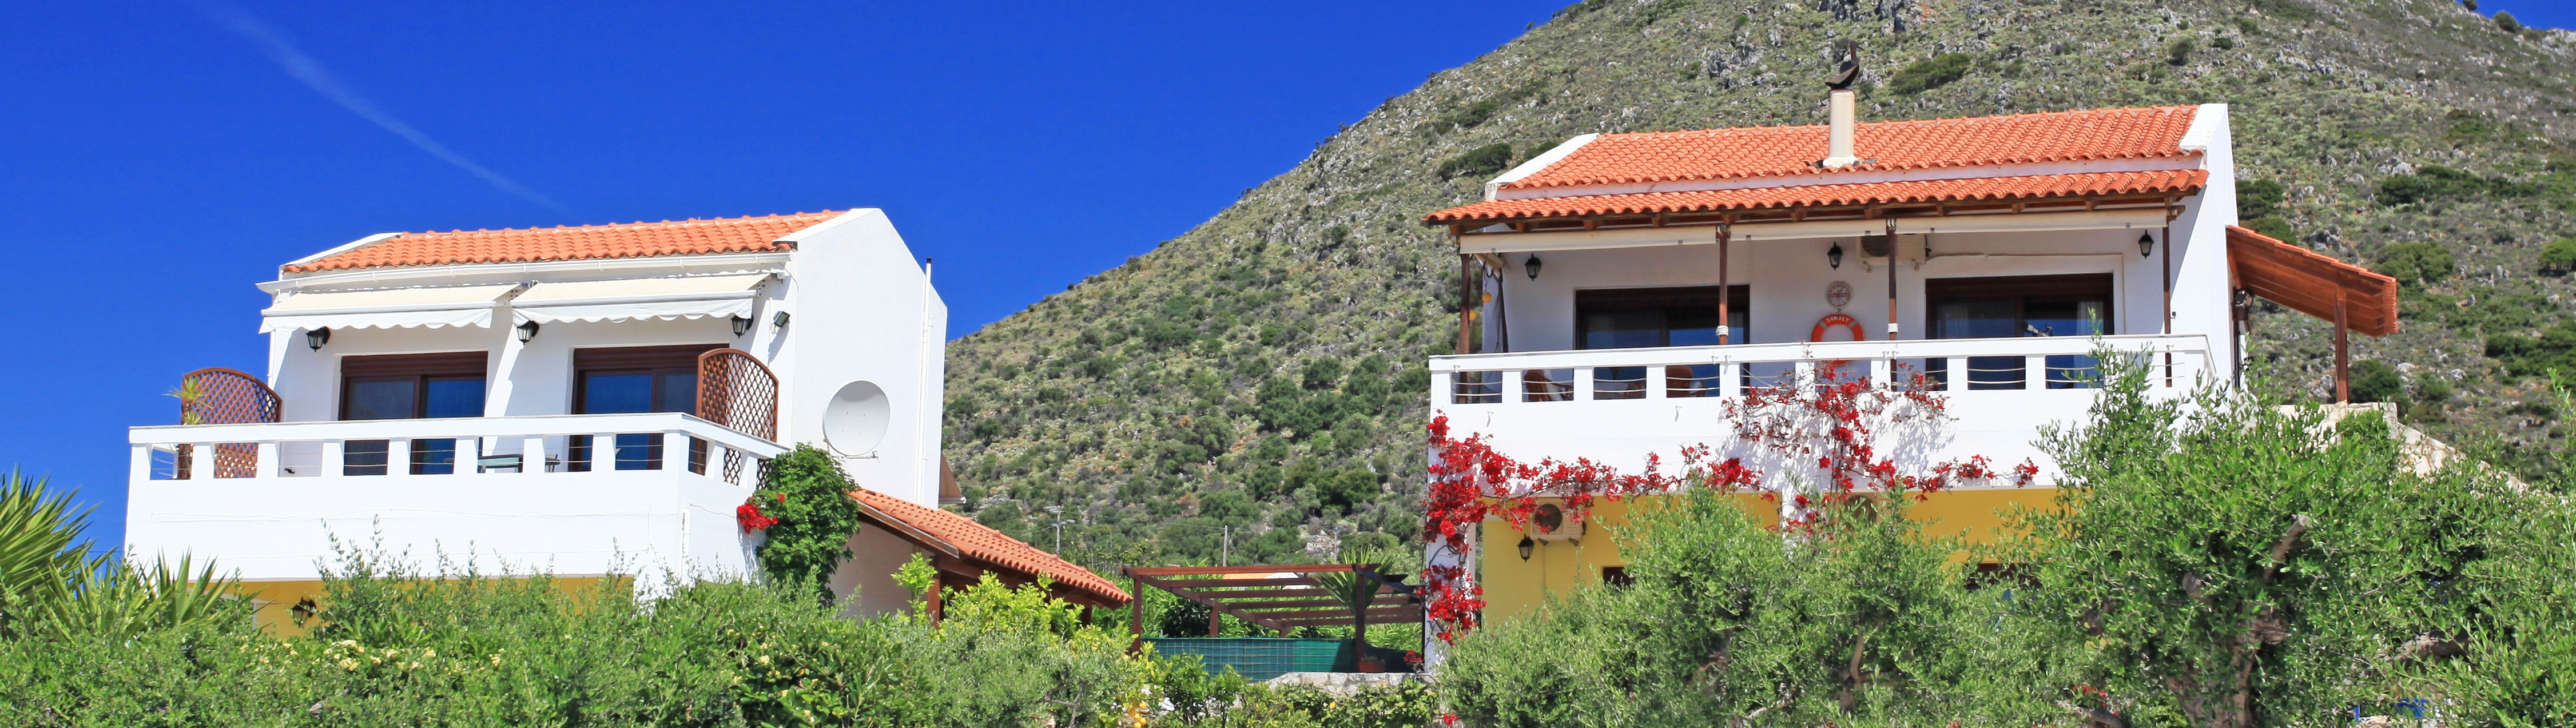 DC-713 2 Bed Villa with Pool and Seperate Guest House in Kambia €495,000